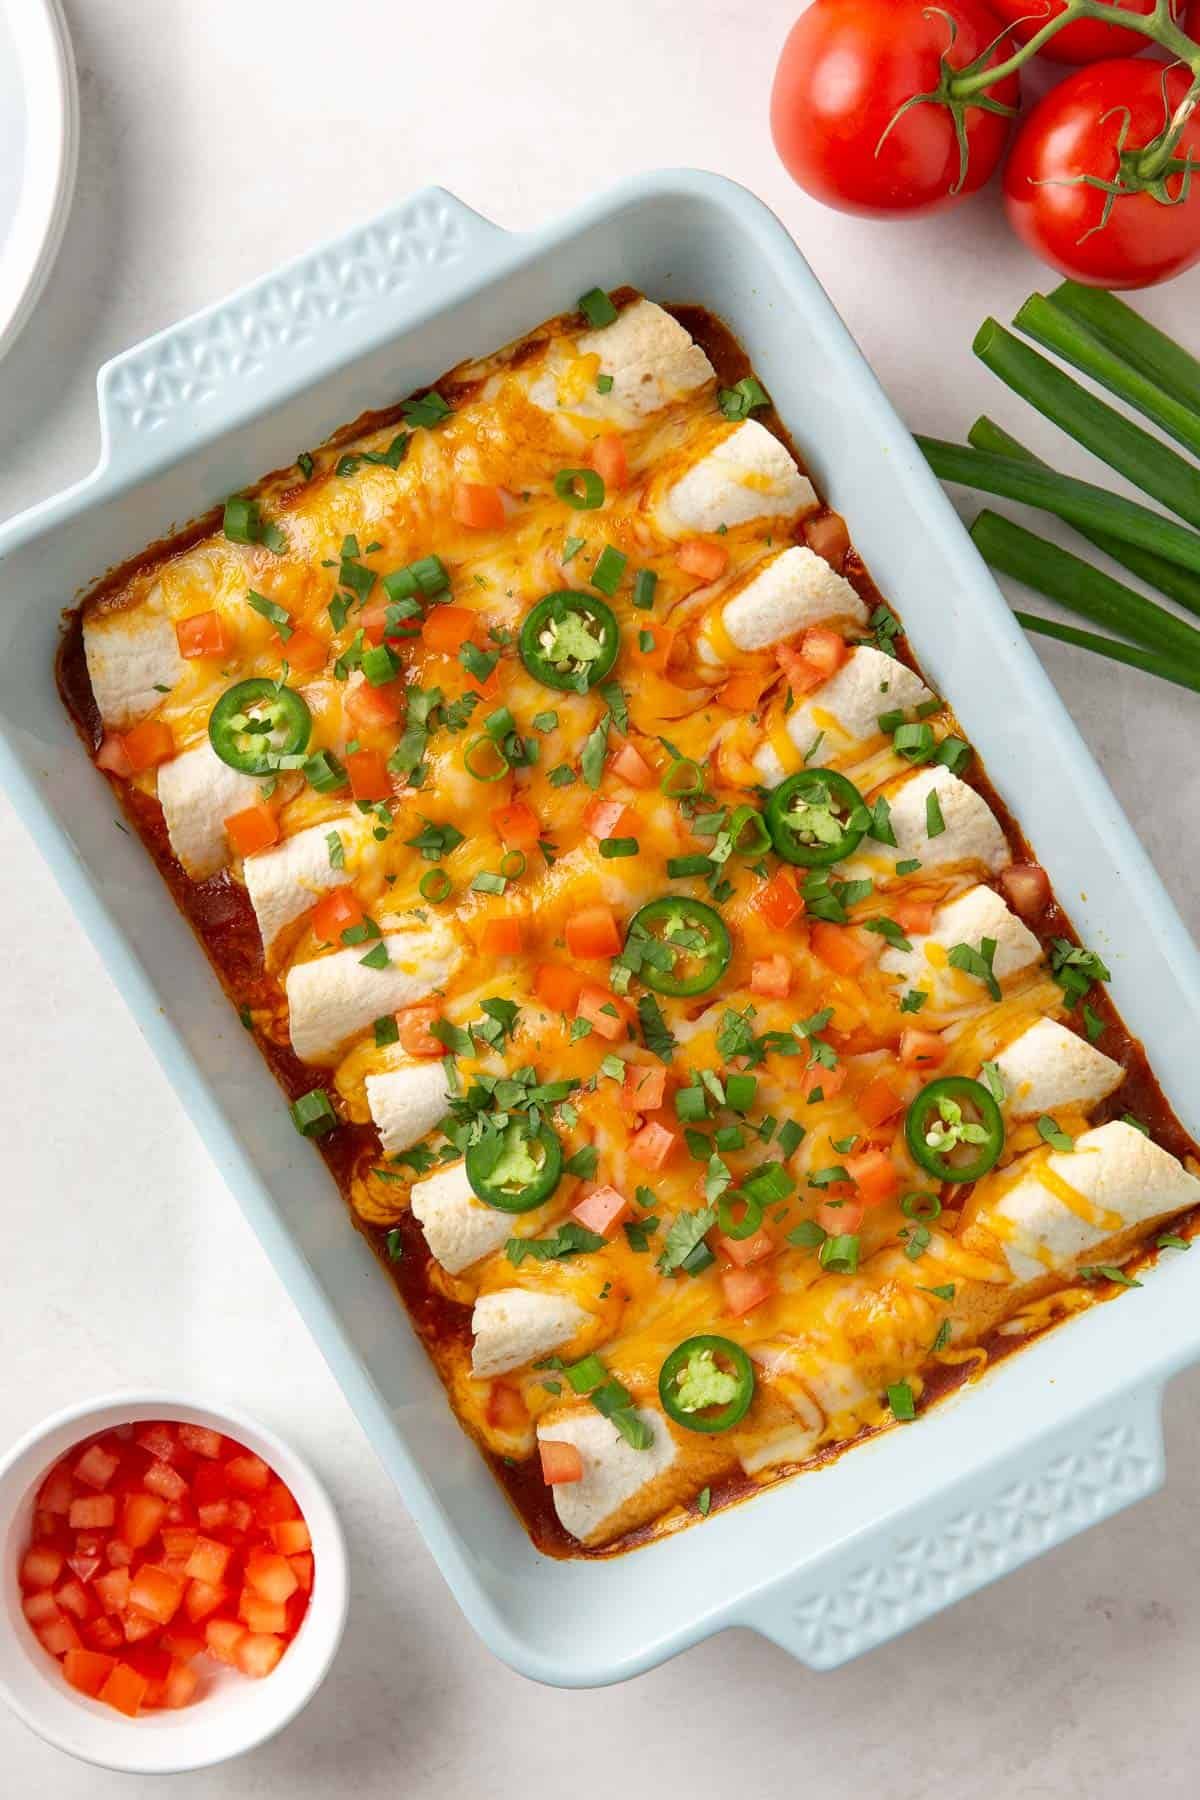 Overhead view of easy beef enchiladas in a light blue baking dish.